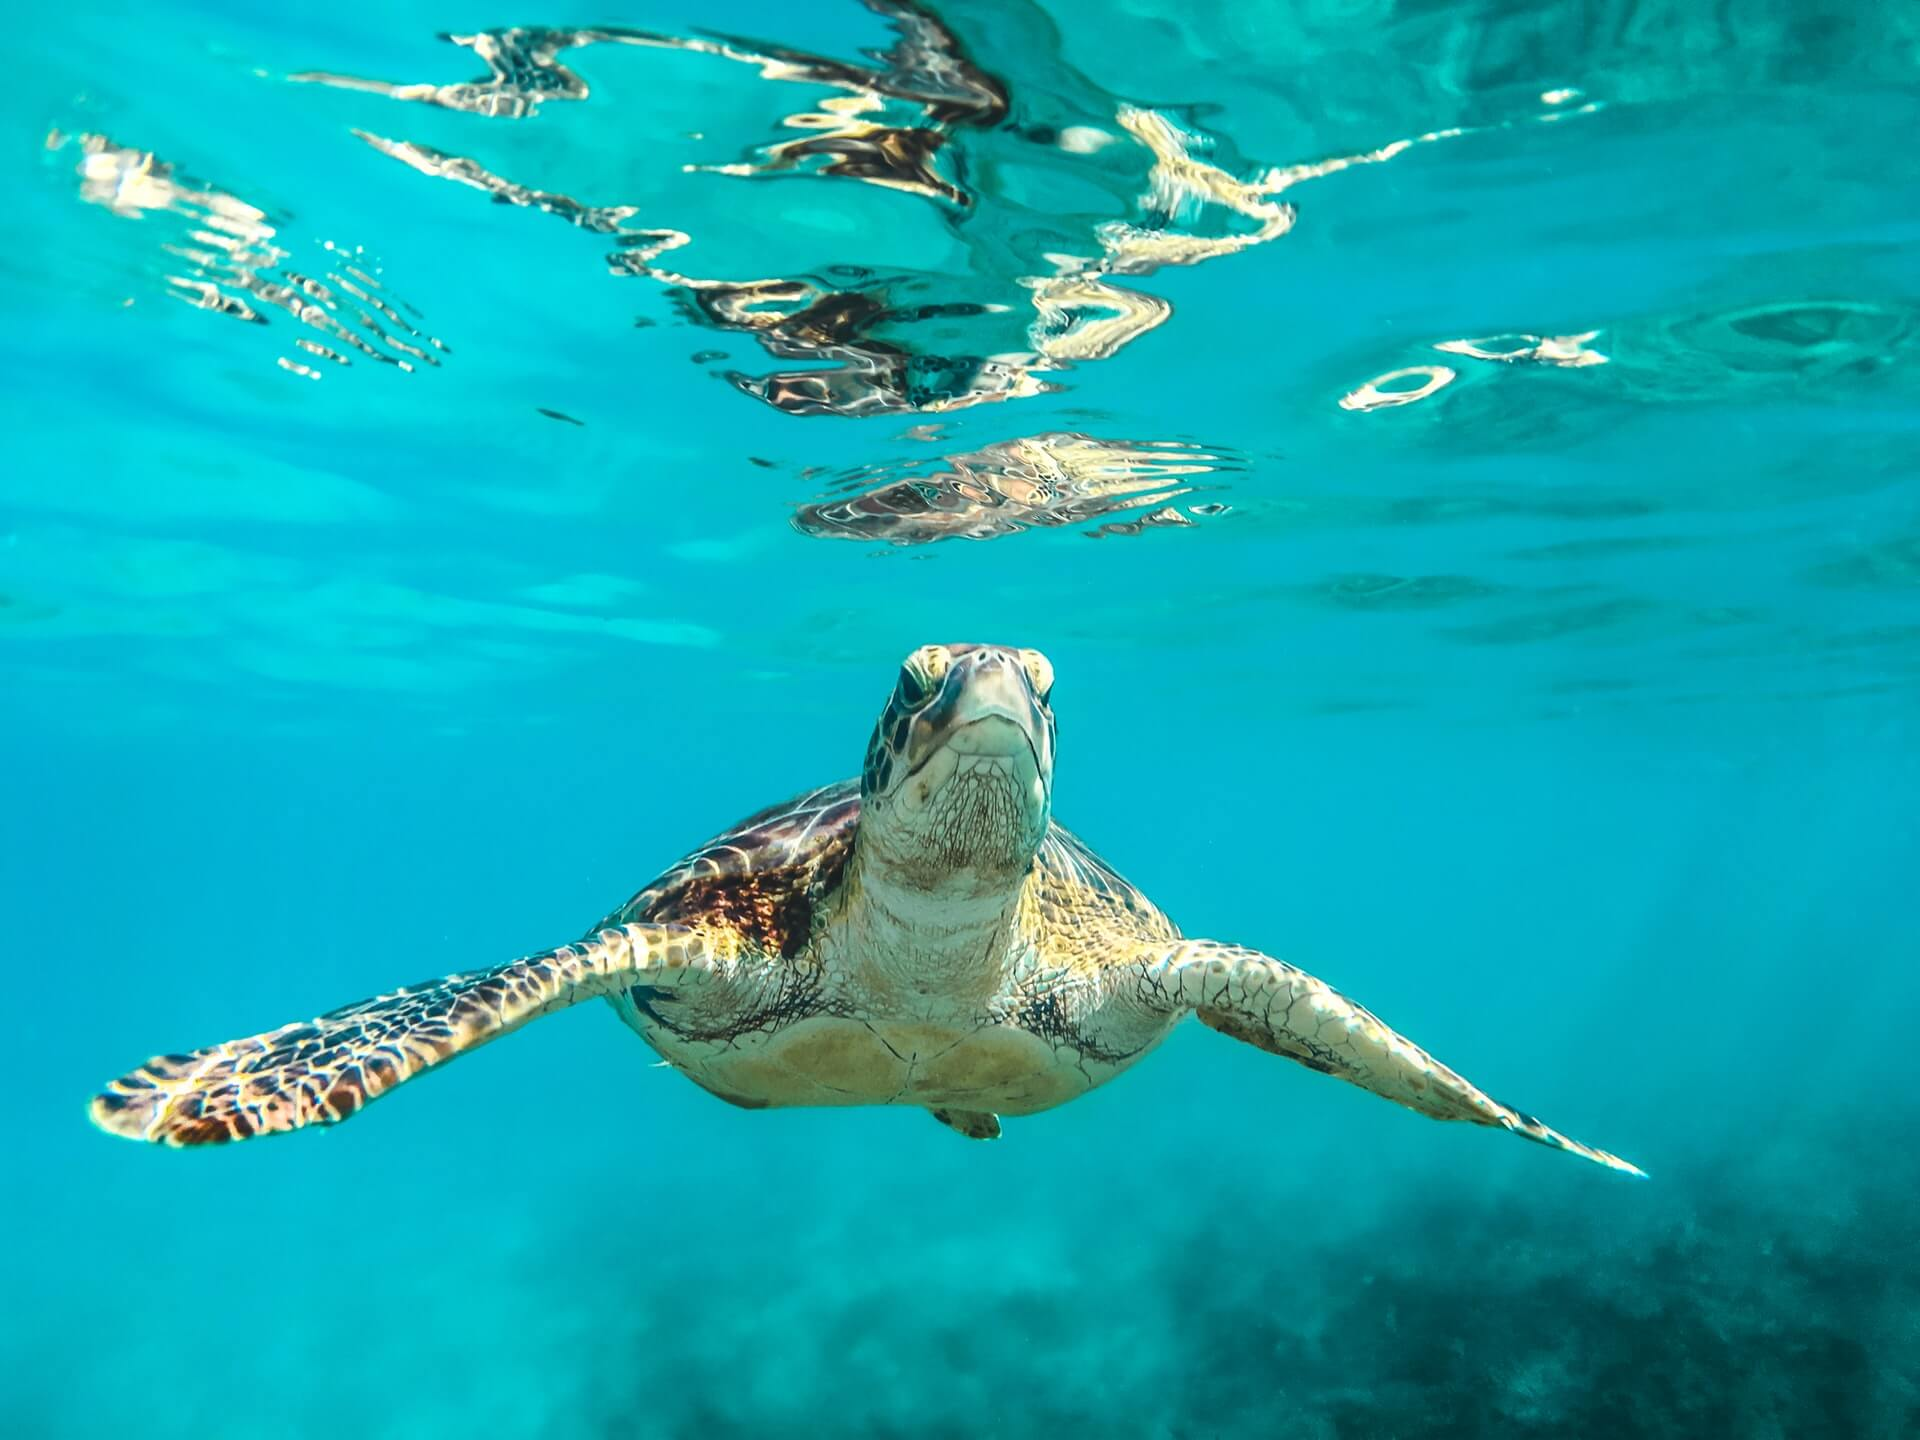 A photograph of a turtle taken by a diver living on a boat in the Caribbean.